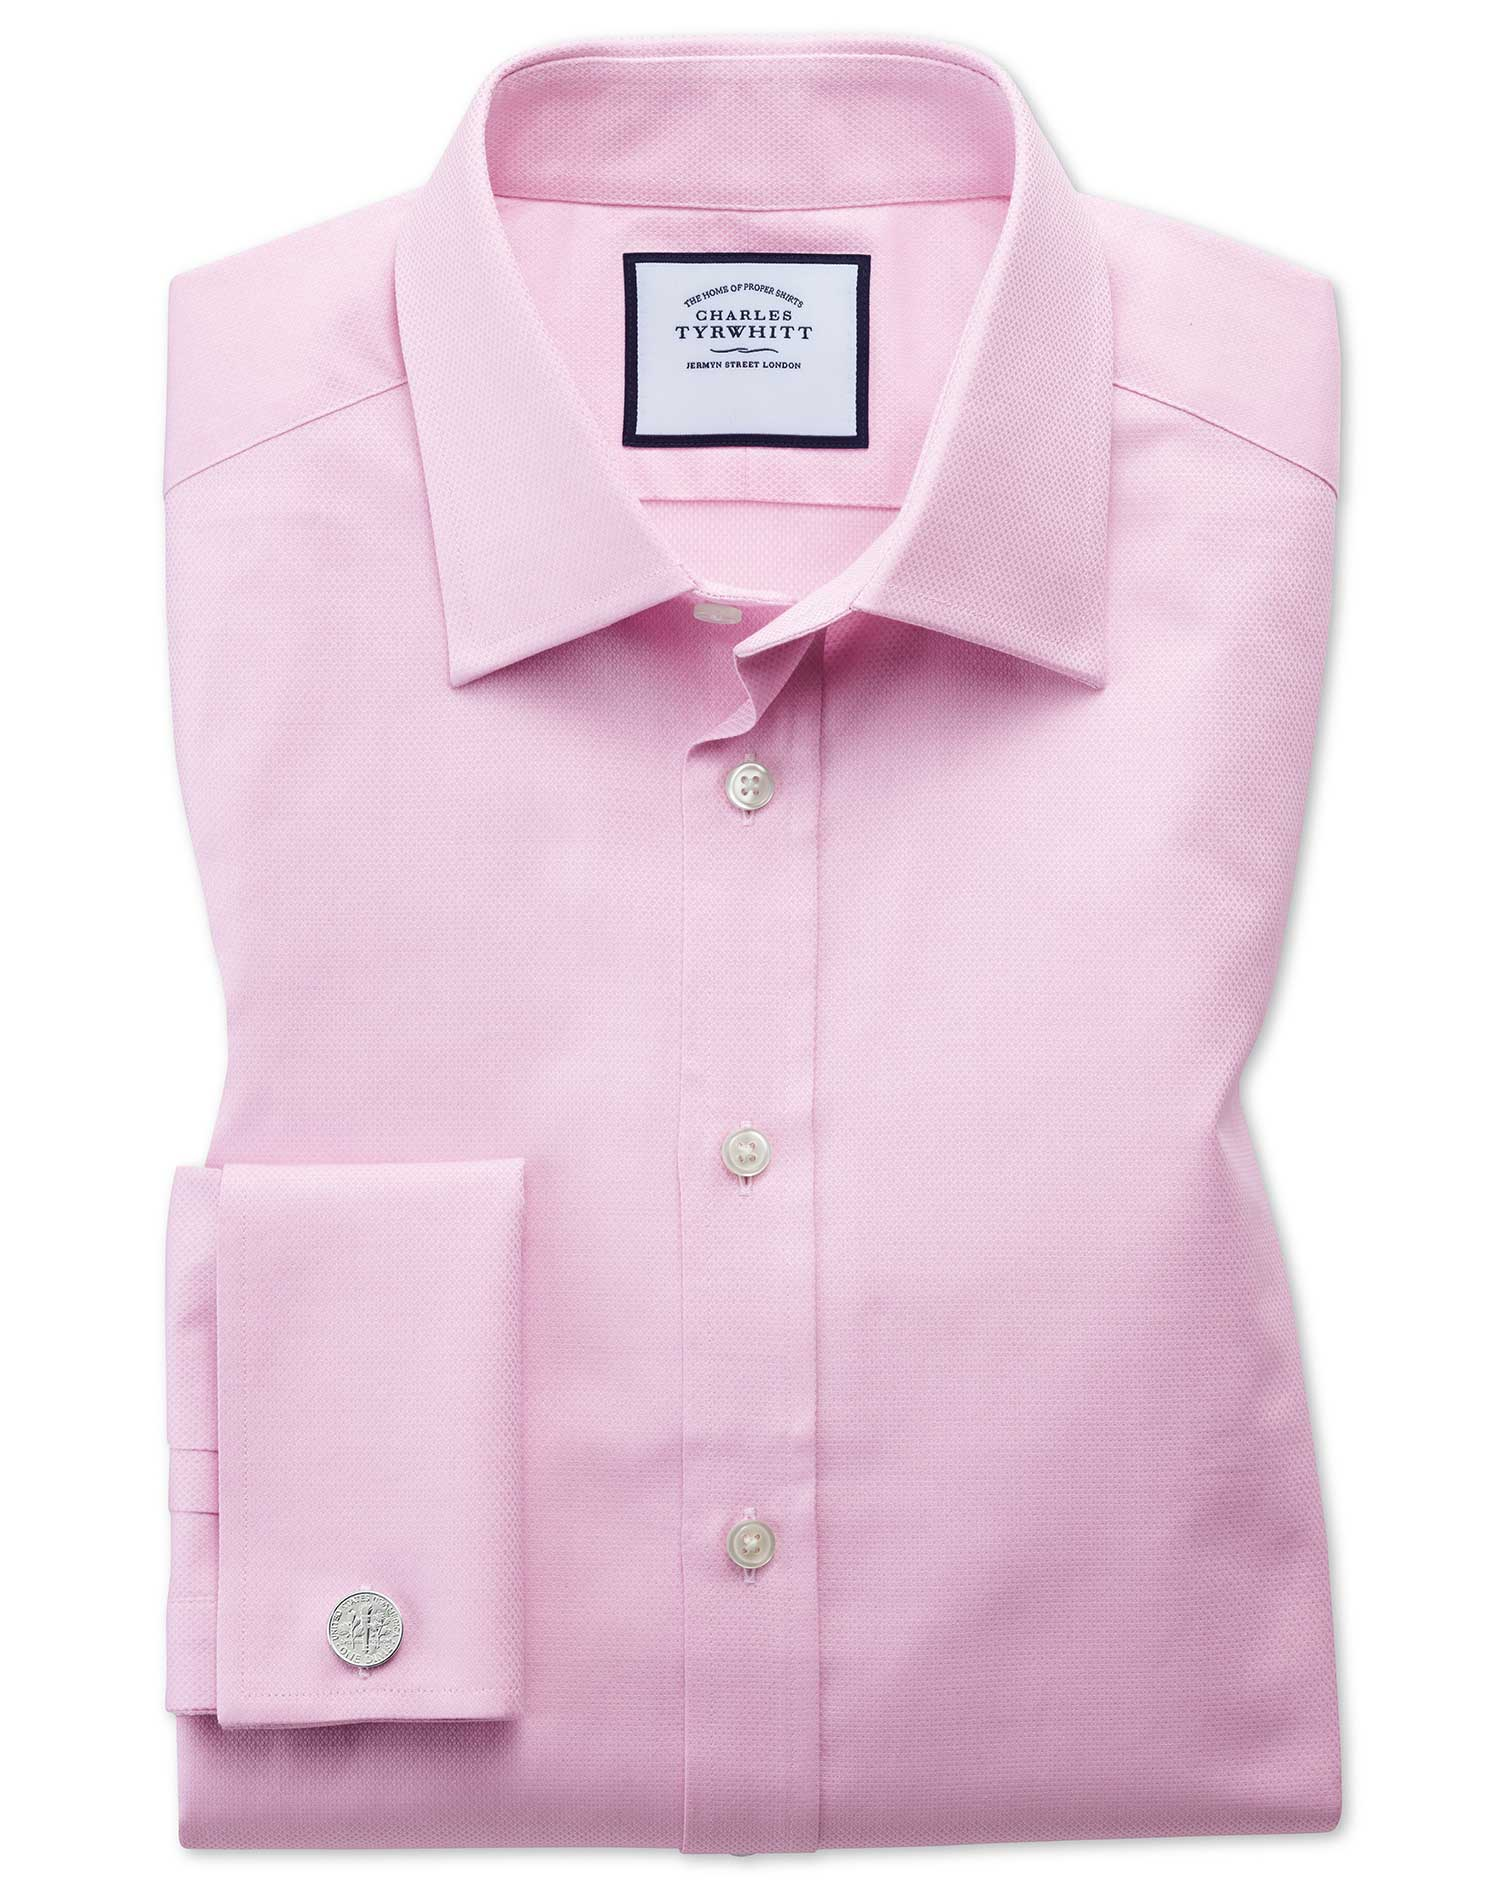 Slim Fit Egyptian Cotton Trellis Weave Pink Formal Shirt Single Cuff Size 15/35 by Charles Tyrwhitt